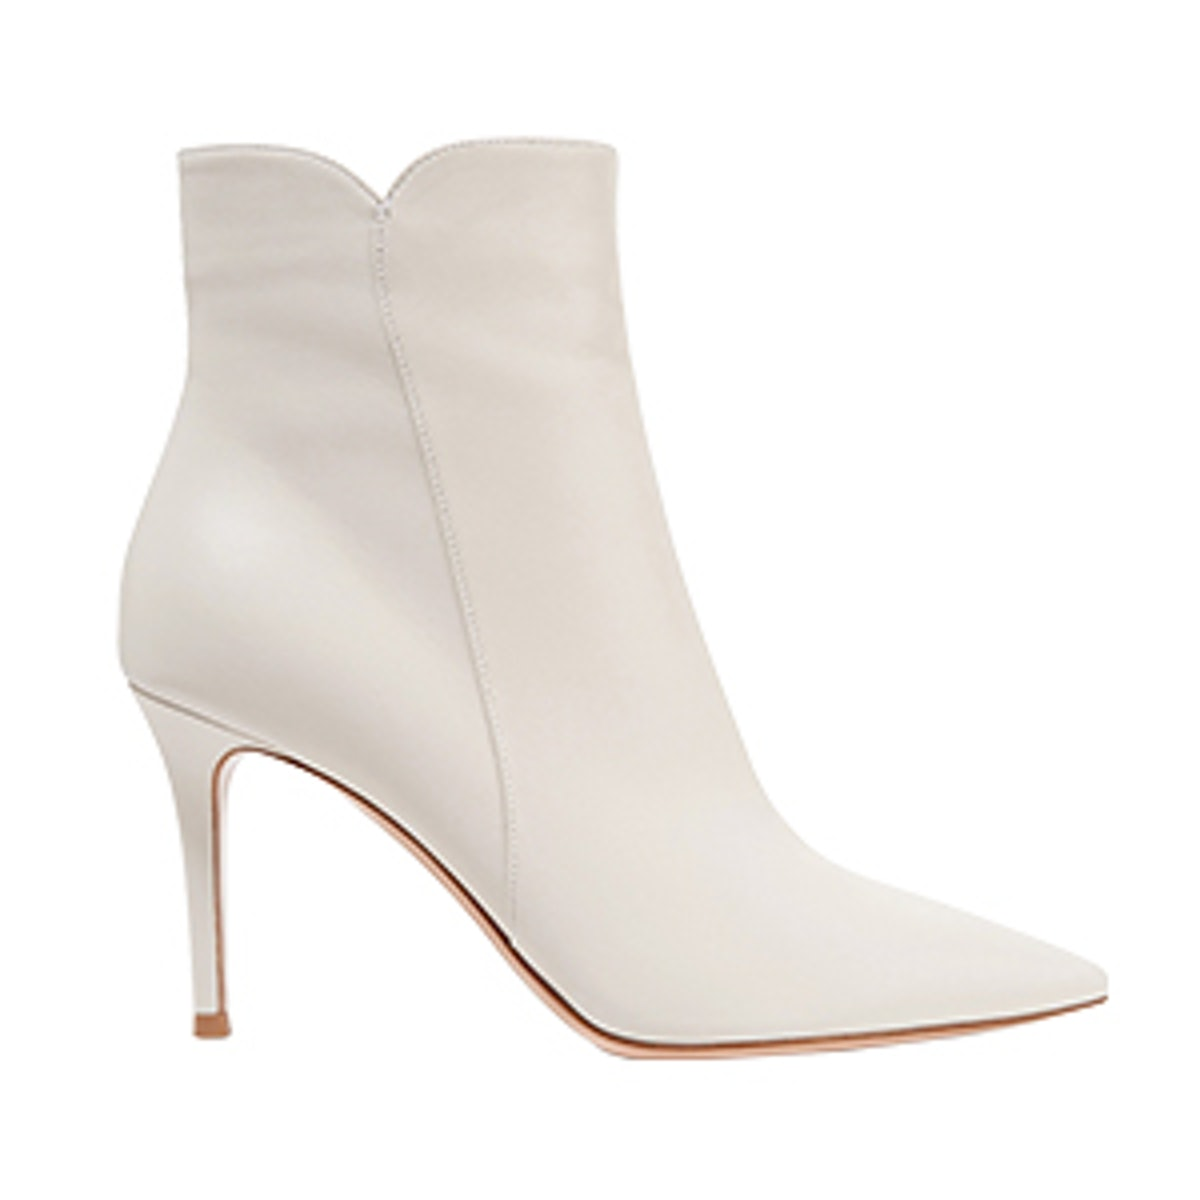 Levy 85 Leather Ankle Boots